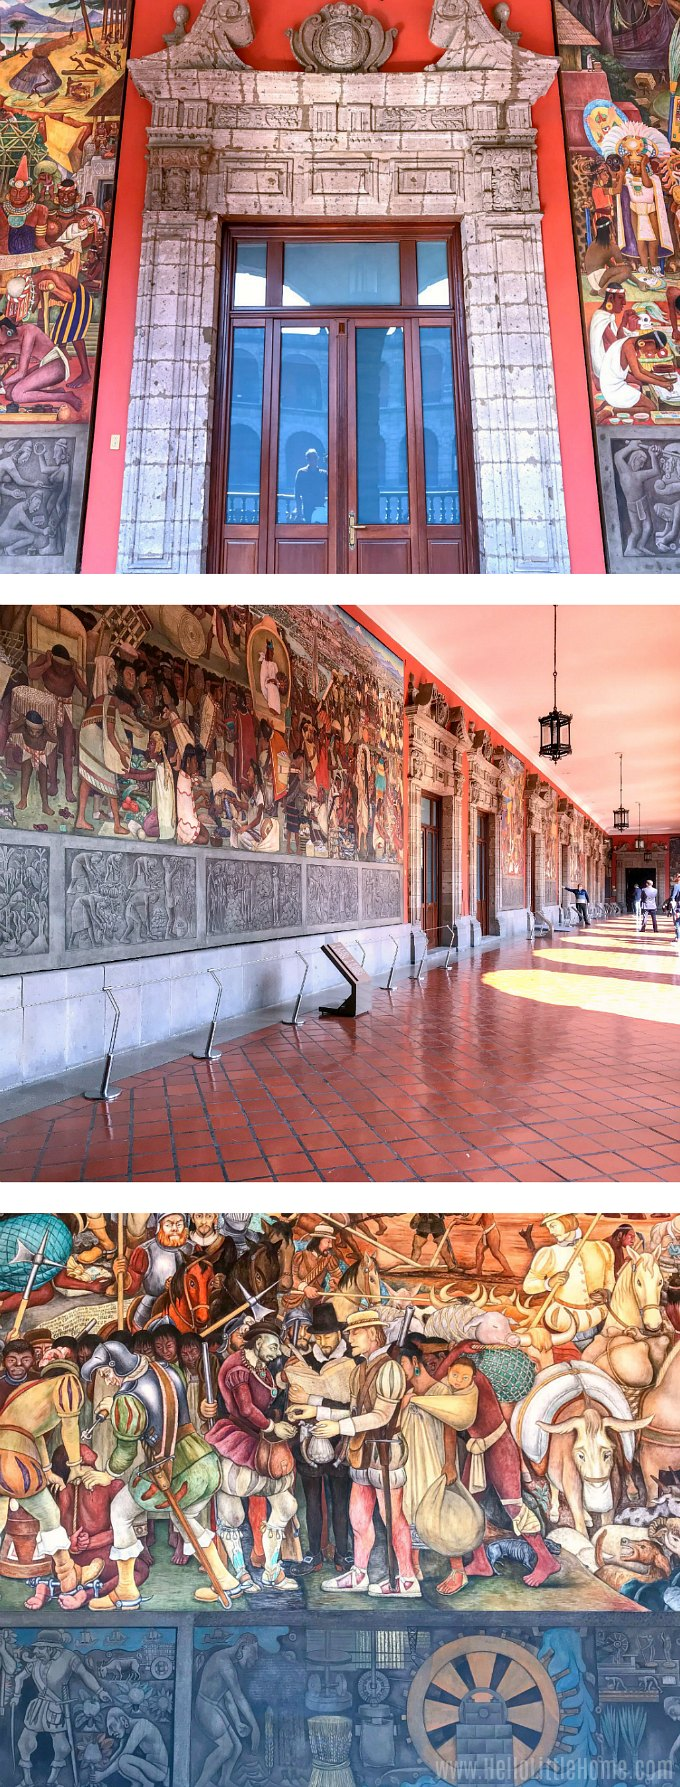 Three different sections of the Diego Rivera murals at Mexico's National Palace